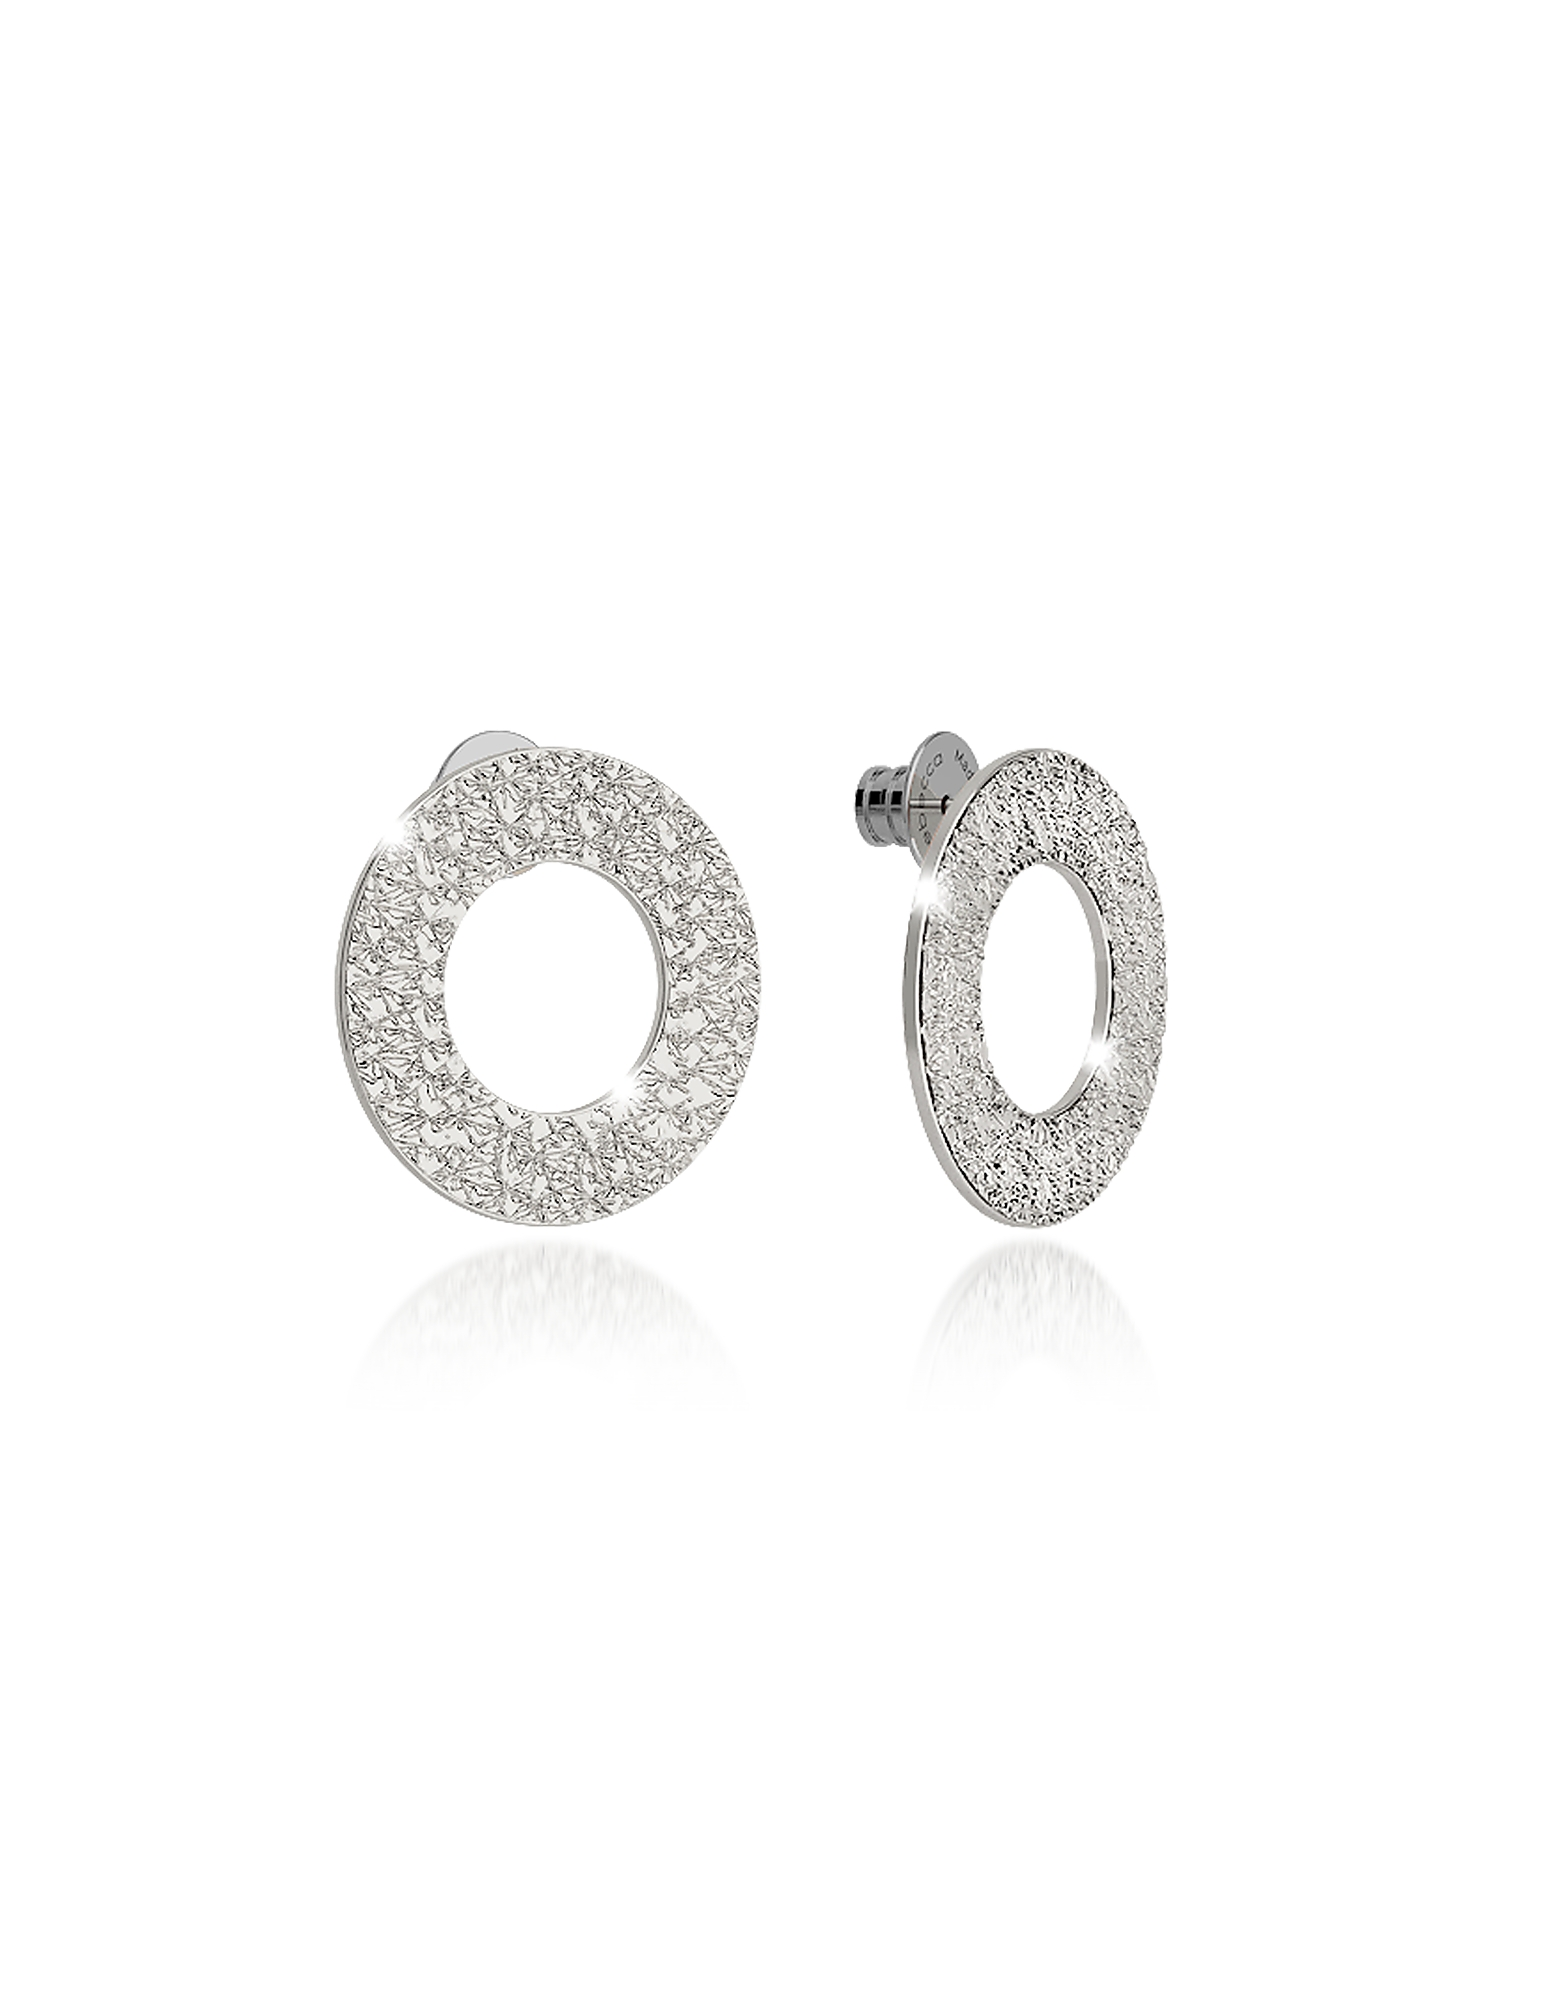 Rebecca Earrings, R-Zero Rhodium Over Bronze Stud Drop Earrings